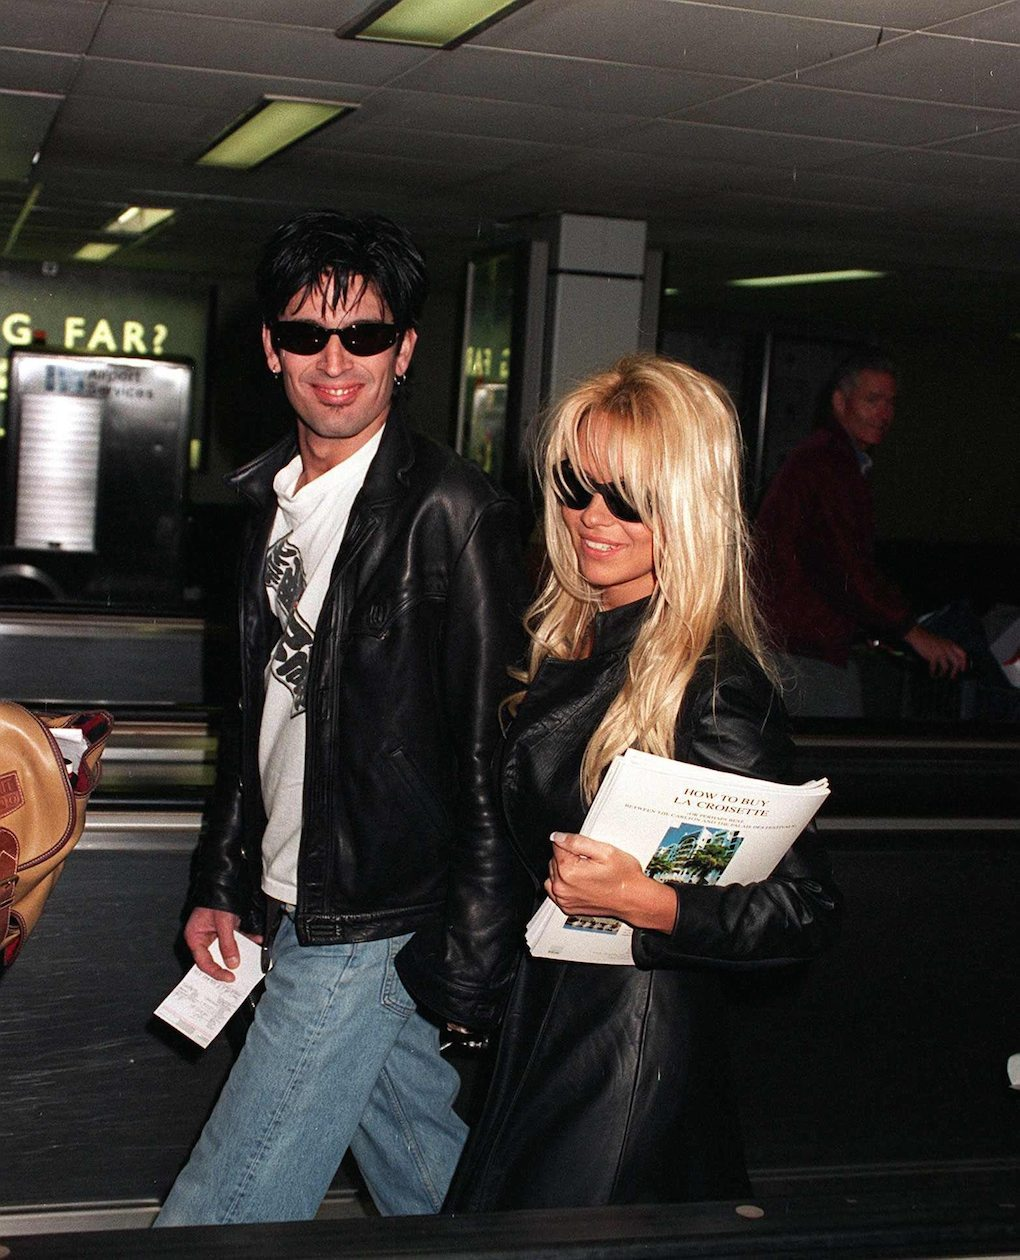 Pamela Anderson actress and then-husband rock star Tommy Lee arrive at Heathrow Airport after the Cannes Film Festival. 1995. Mirrorpix/Courtesy Everett Collection (MPWA1220316)